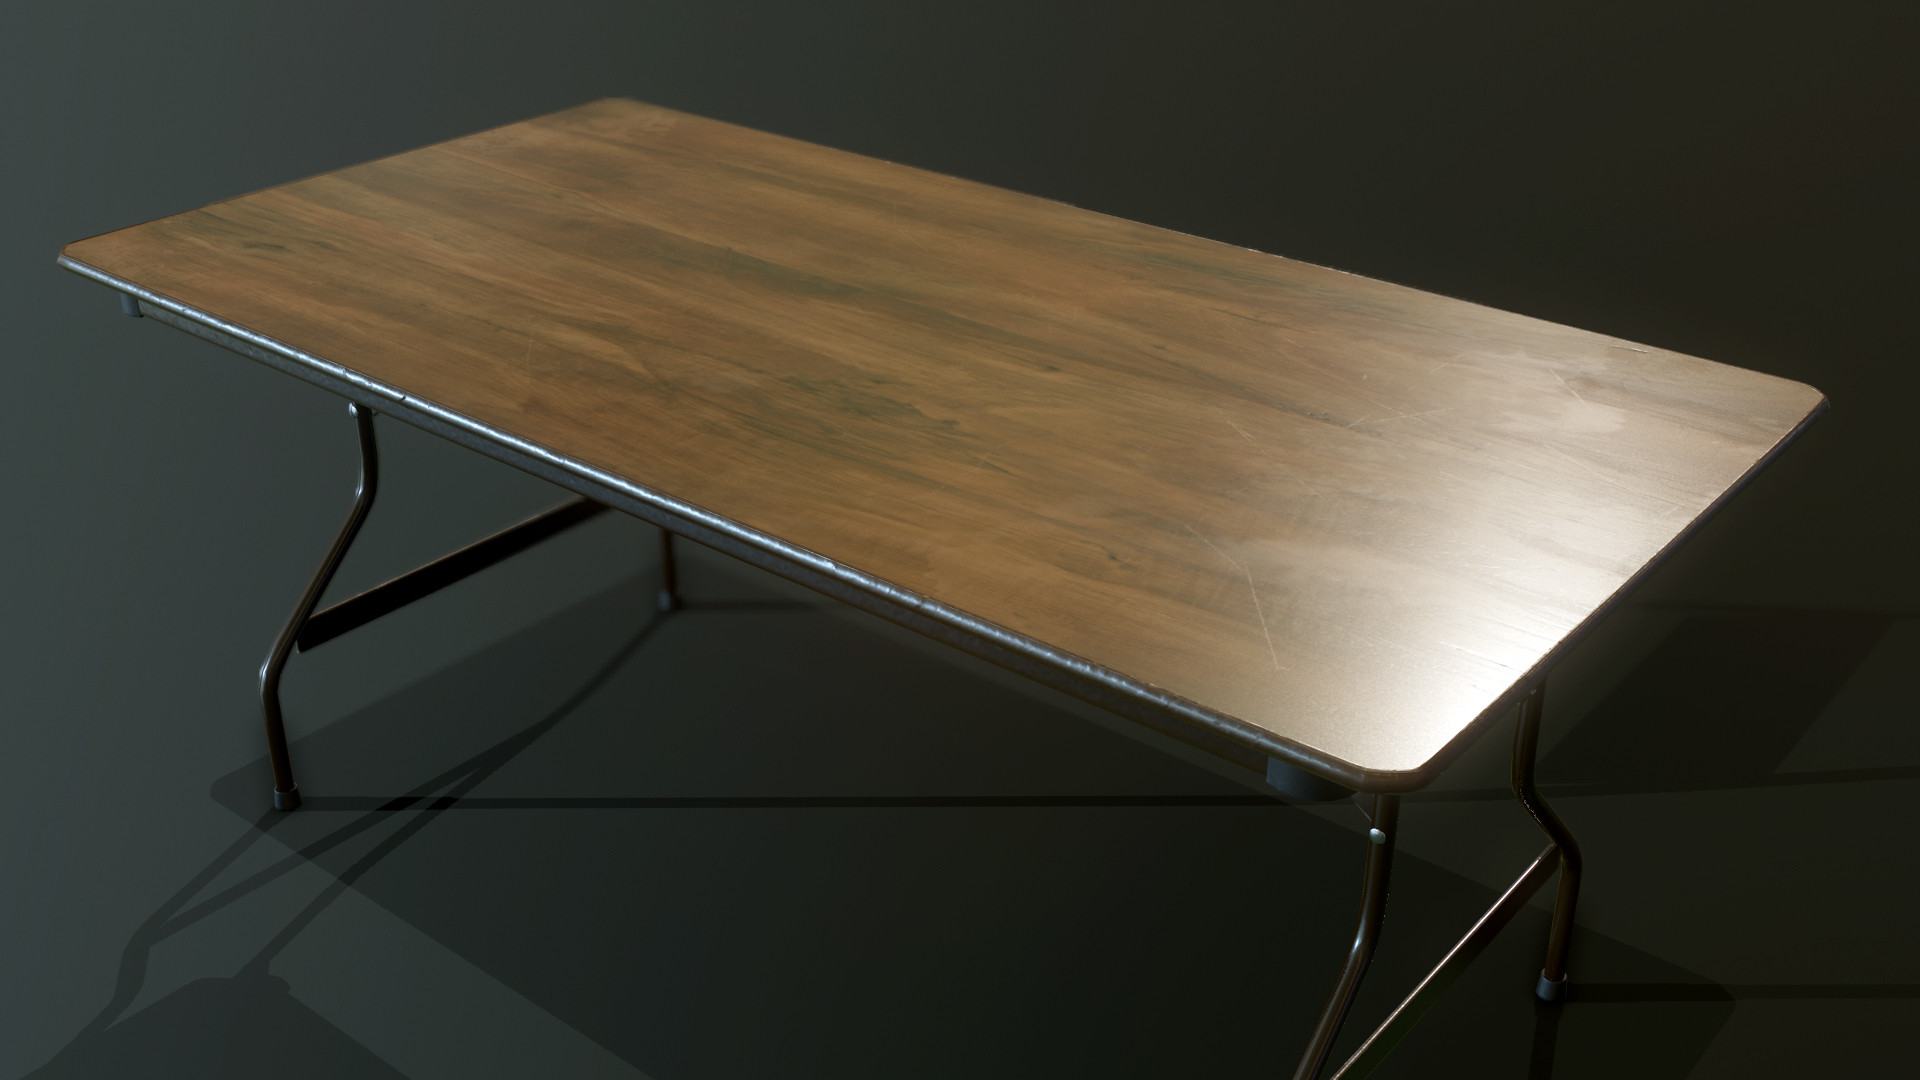 Ben bickle table folding